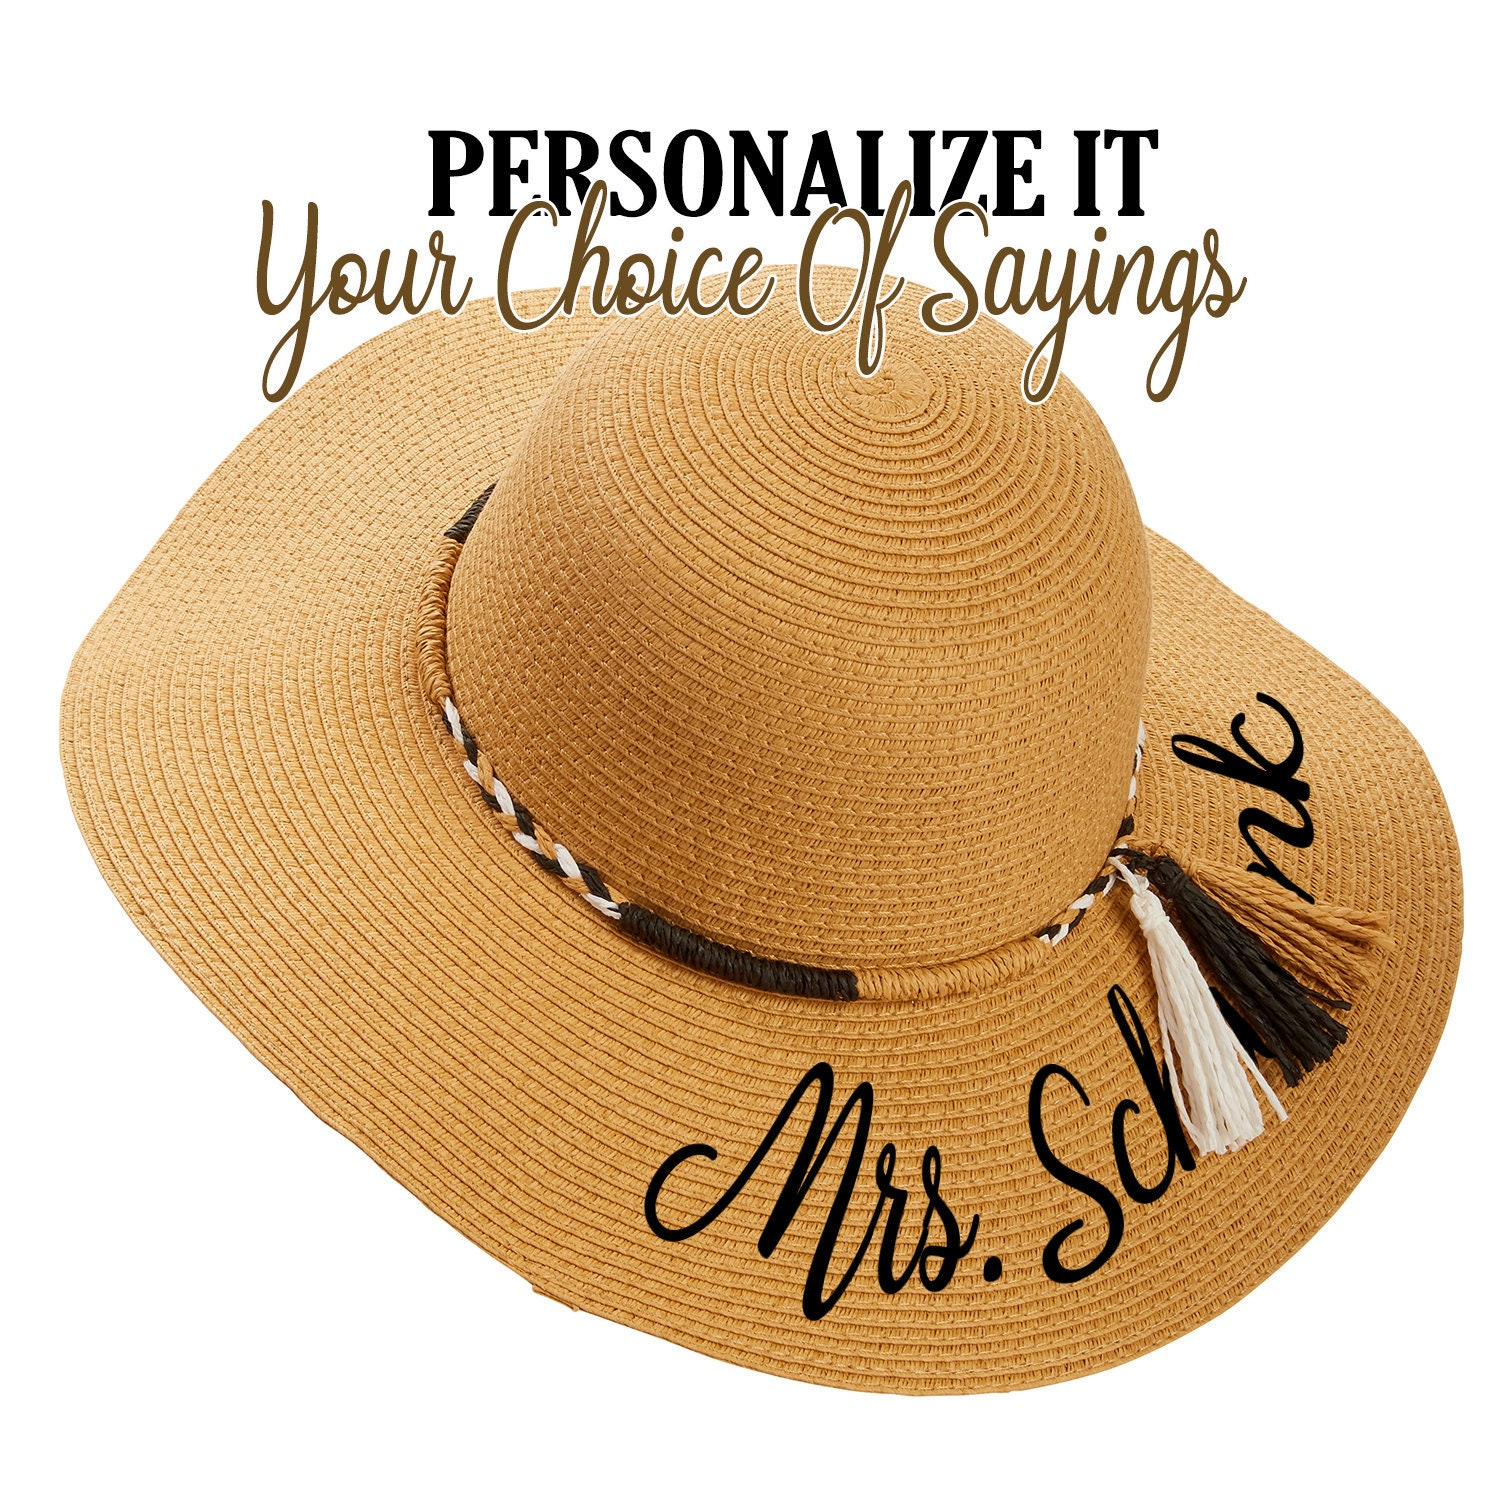 27ddbc694 TASSEL BAND Floppy Hat Floppy Straw Hats Personalized With Your Saying,  Straw Beach Pool Hats Monogrammed, Embroidered Wedding Hats